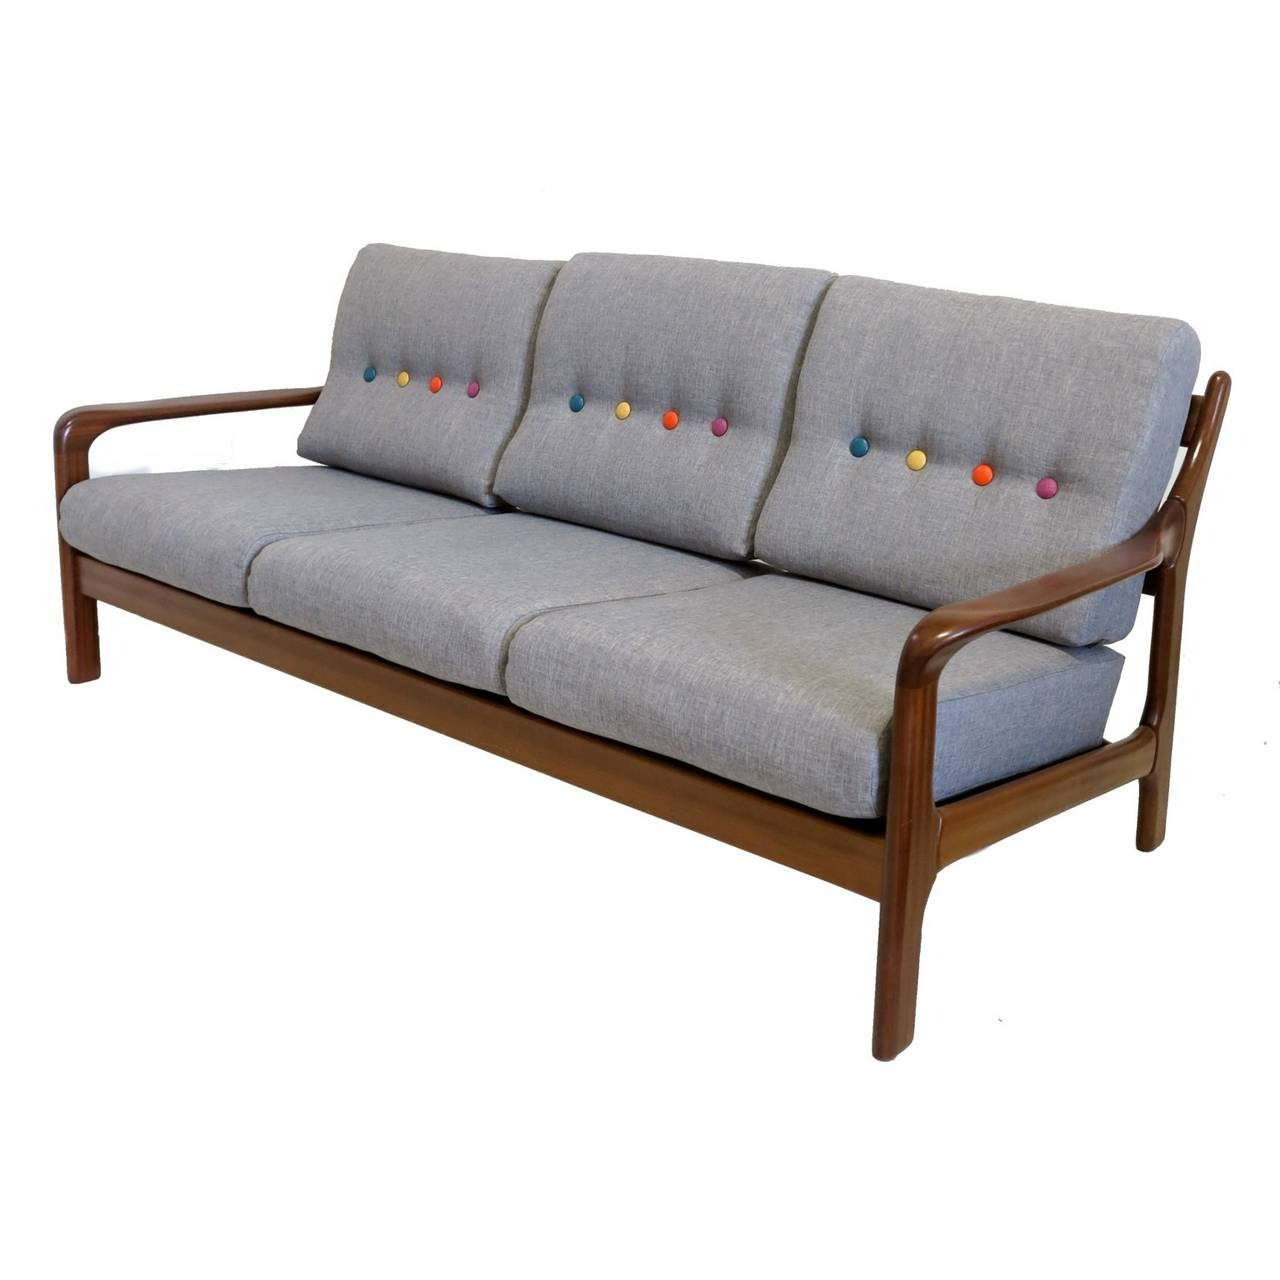 Sofa or daybed in the scandinavian style 1950 1960 at 1stdibs for 50s sectional sofa